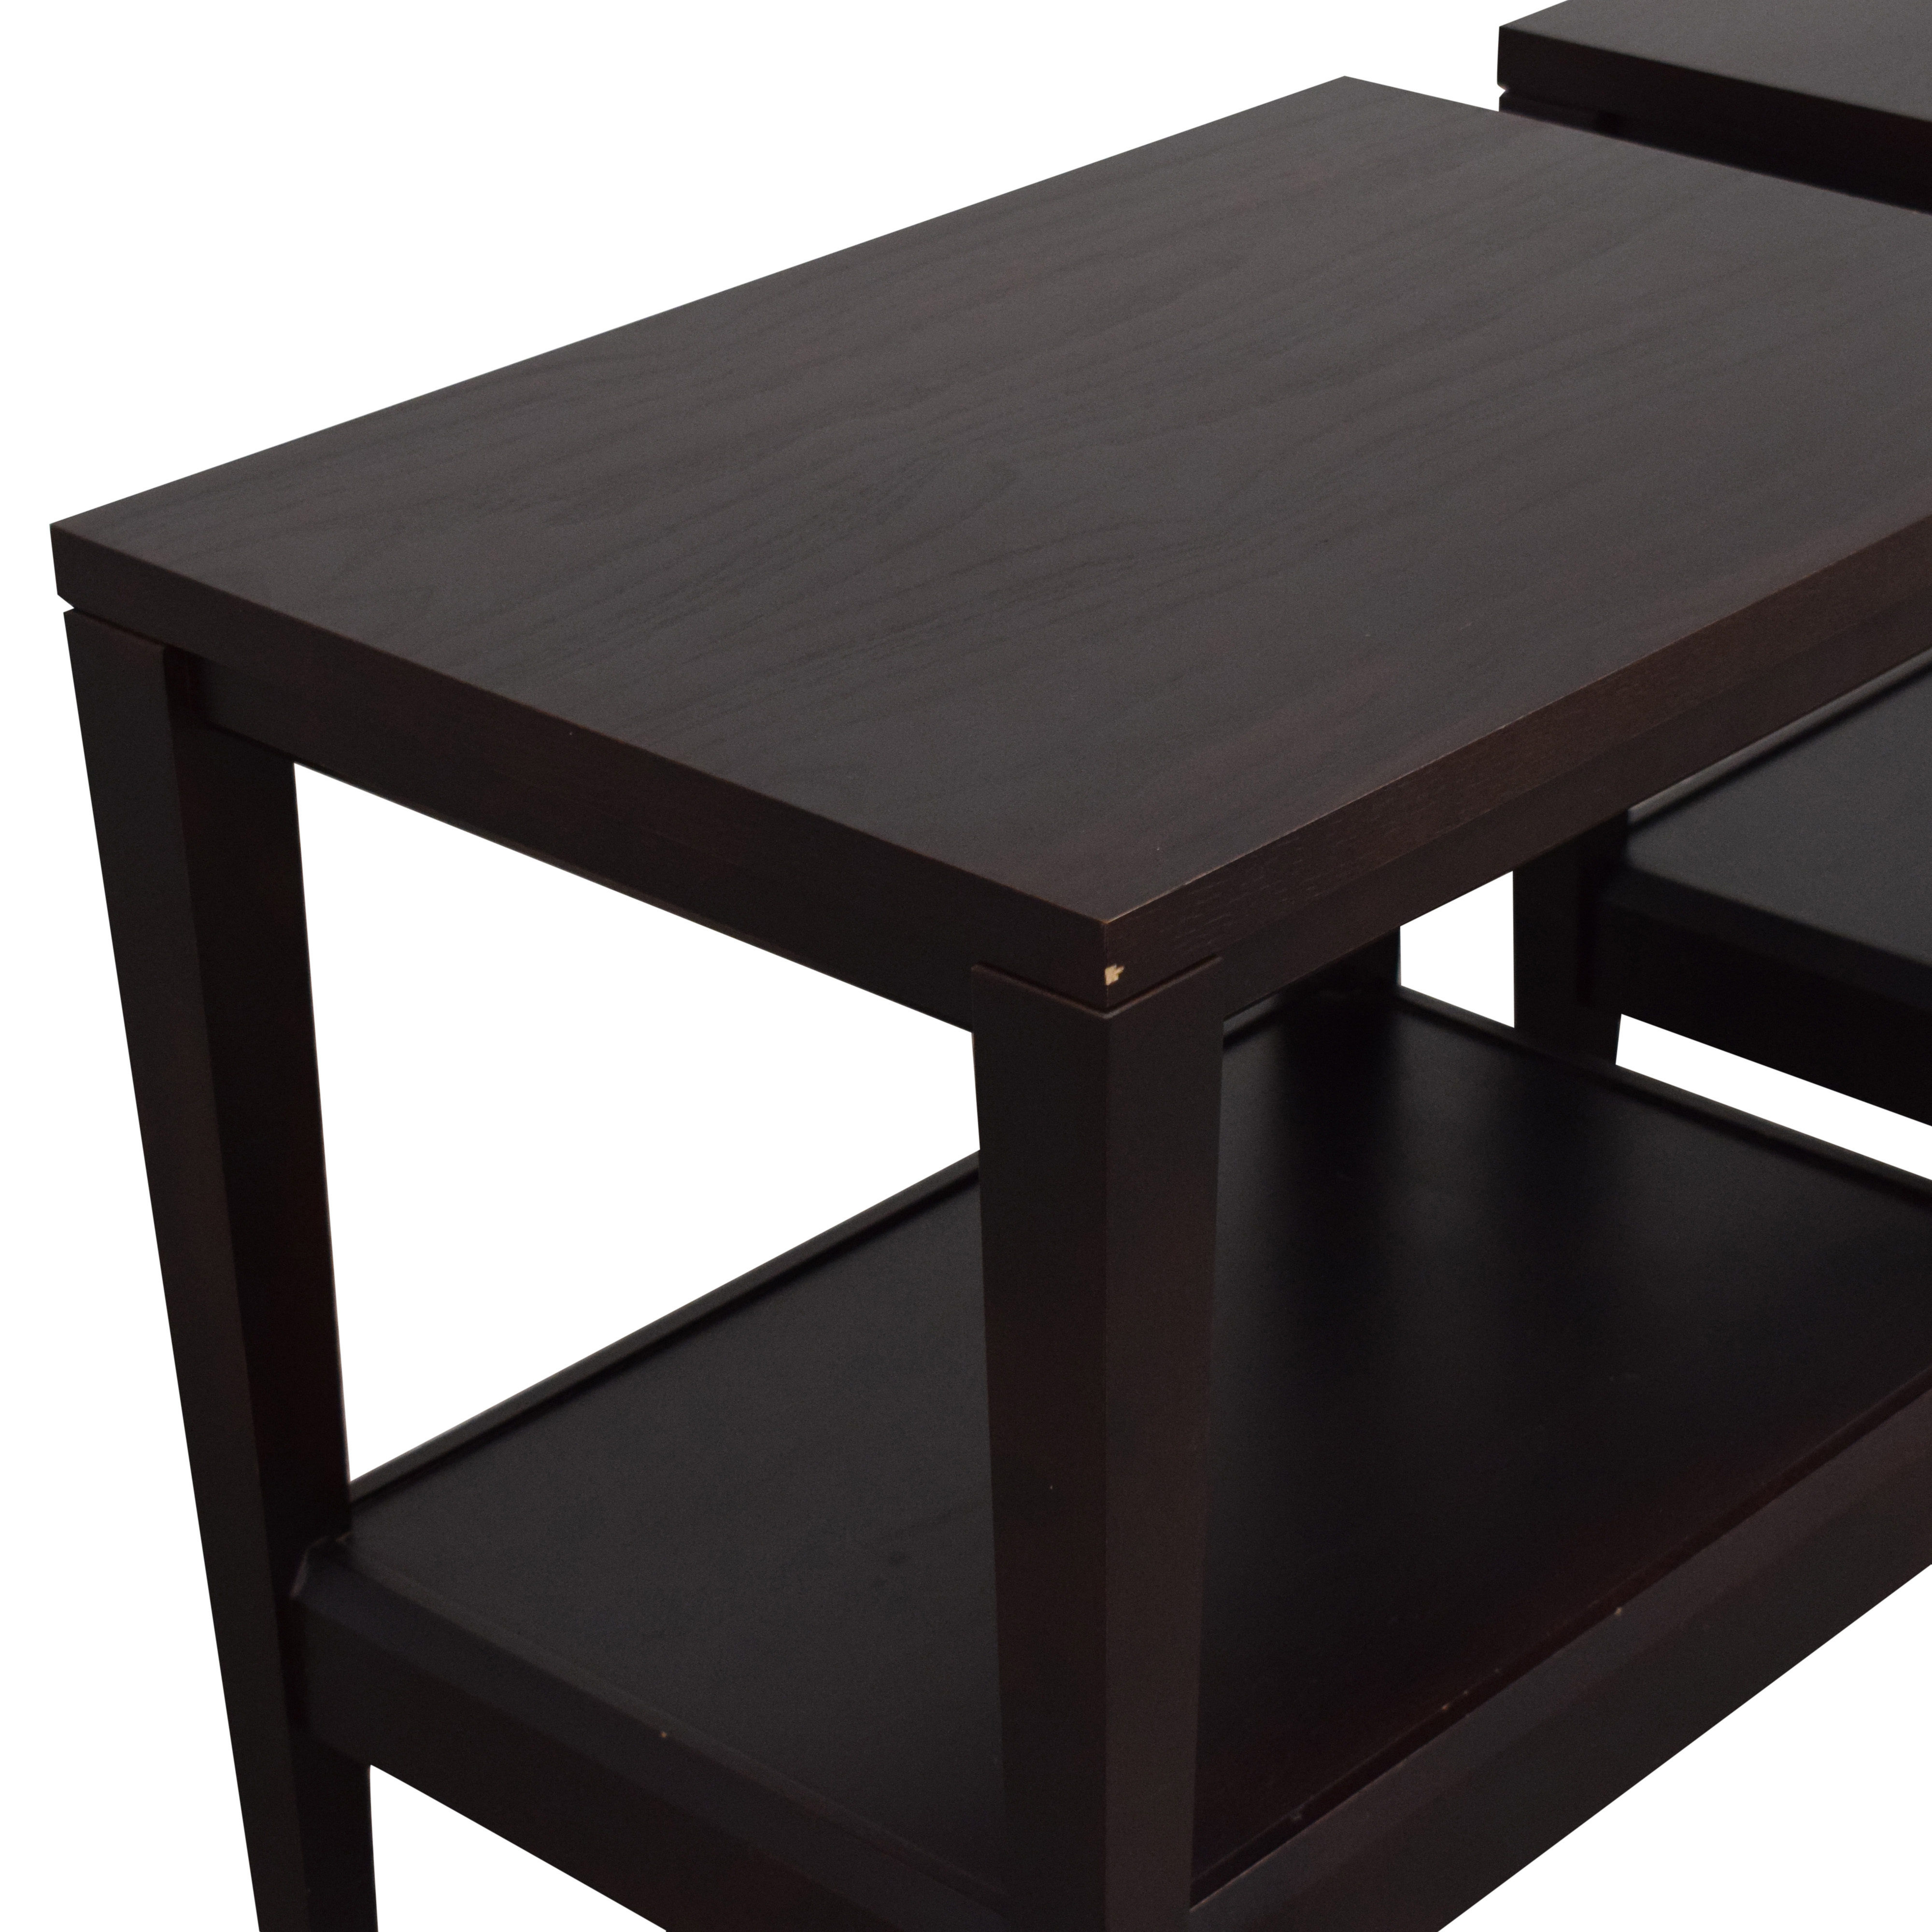 Baronet Crate & Barrel Baronet Side Tables used